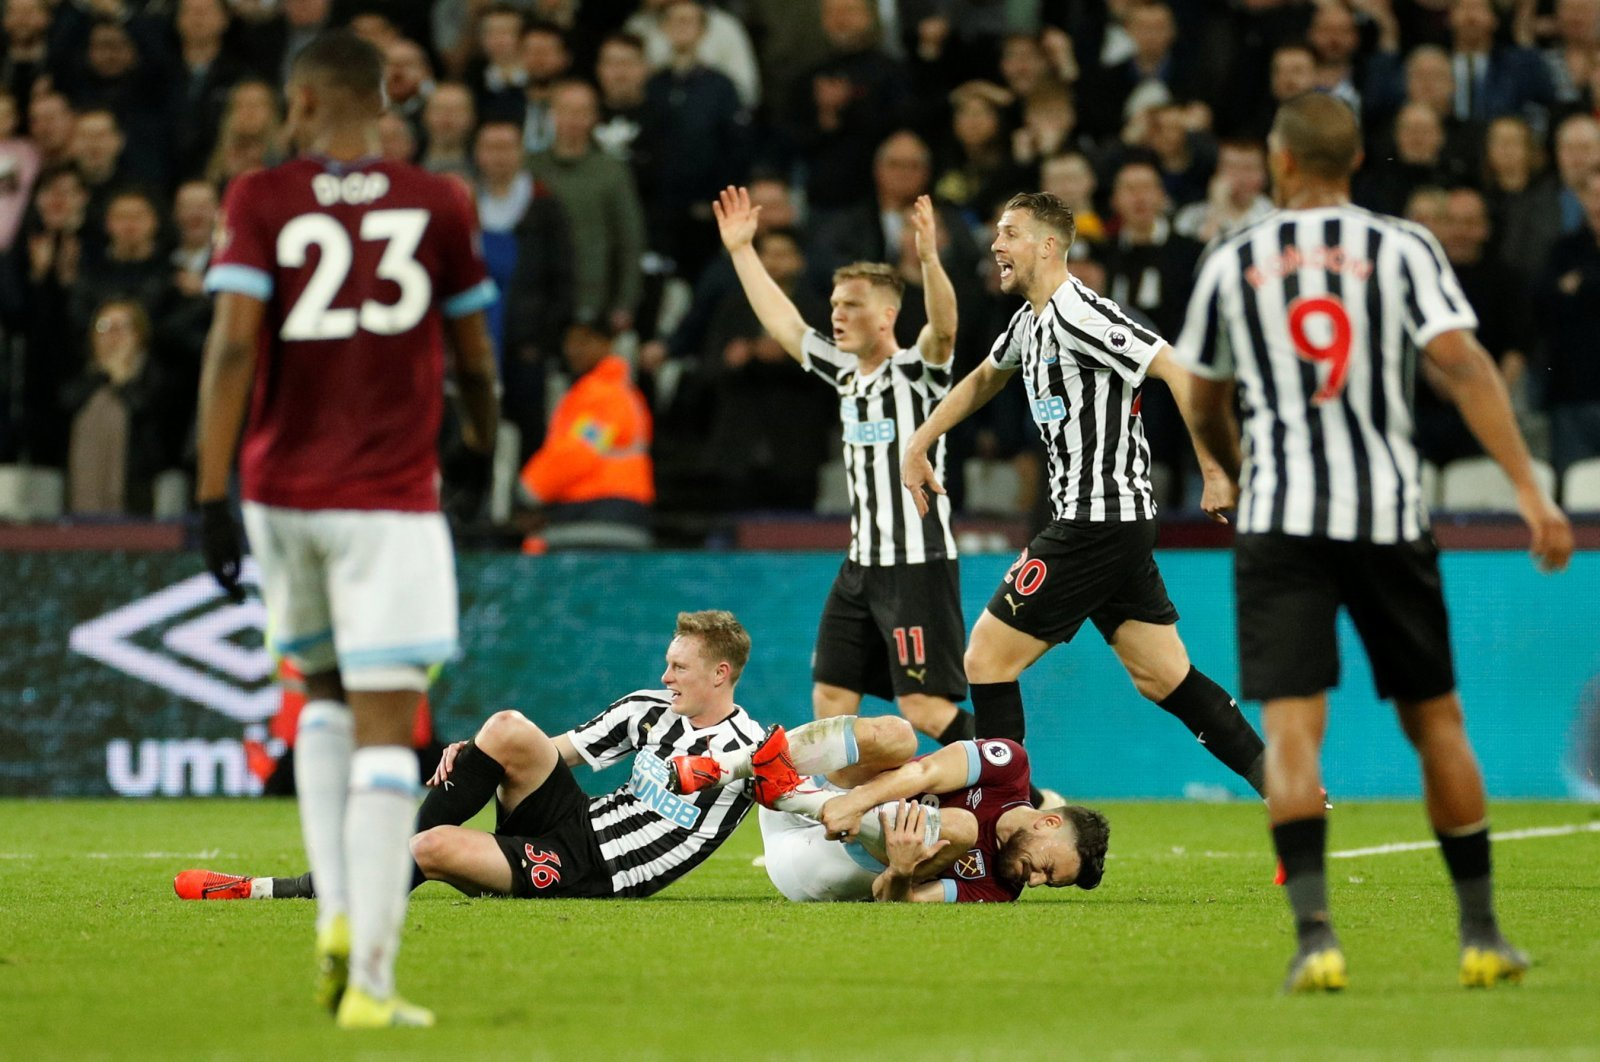 Sean Longstaff's injury could cause problems for Newcastle United